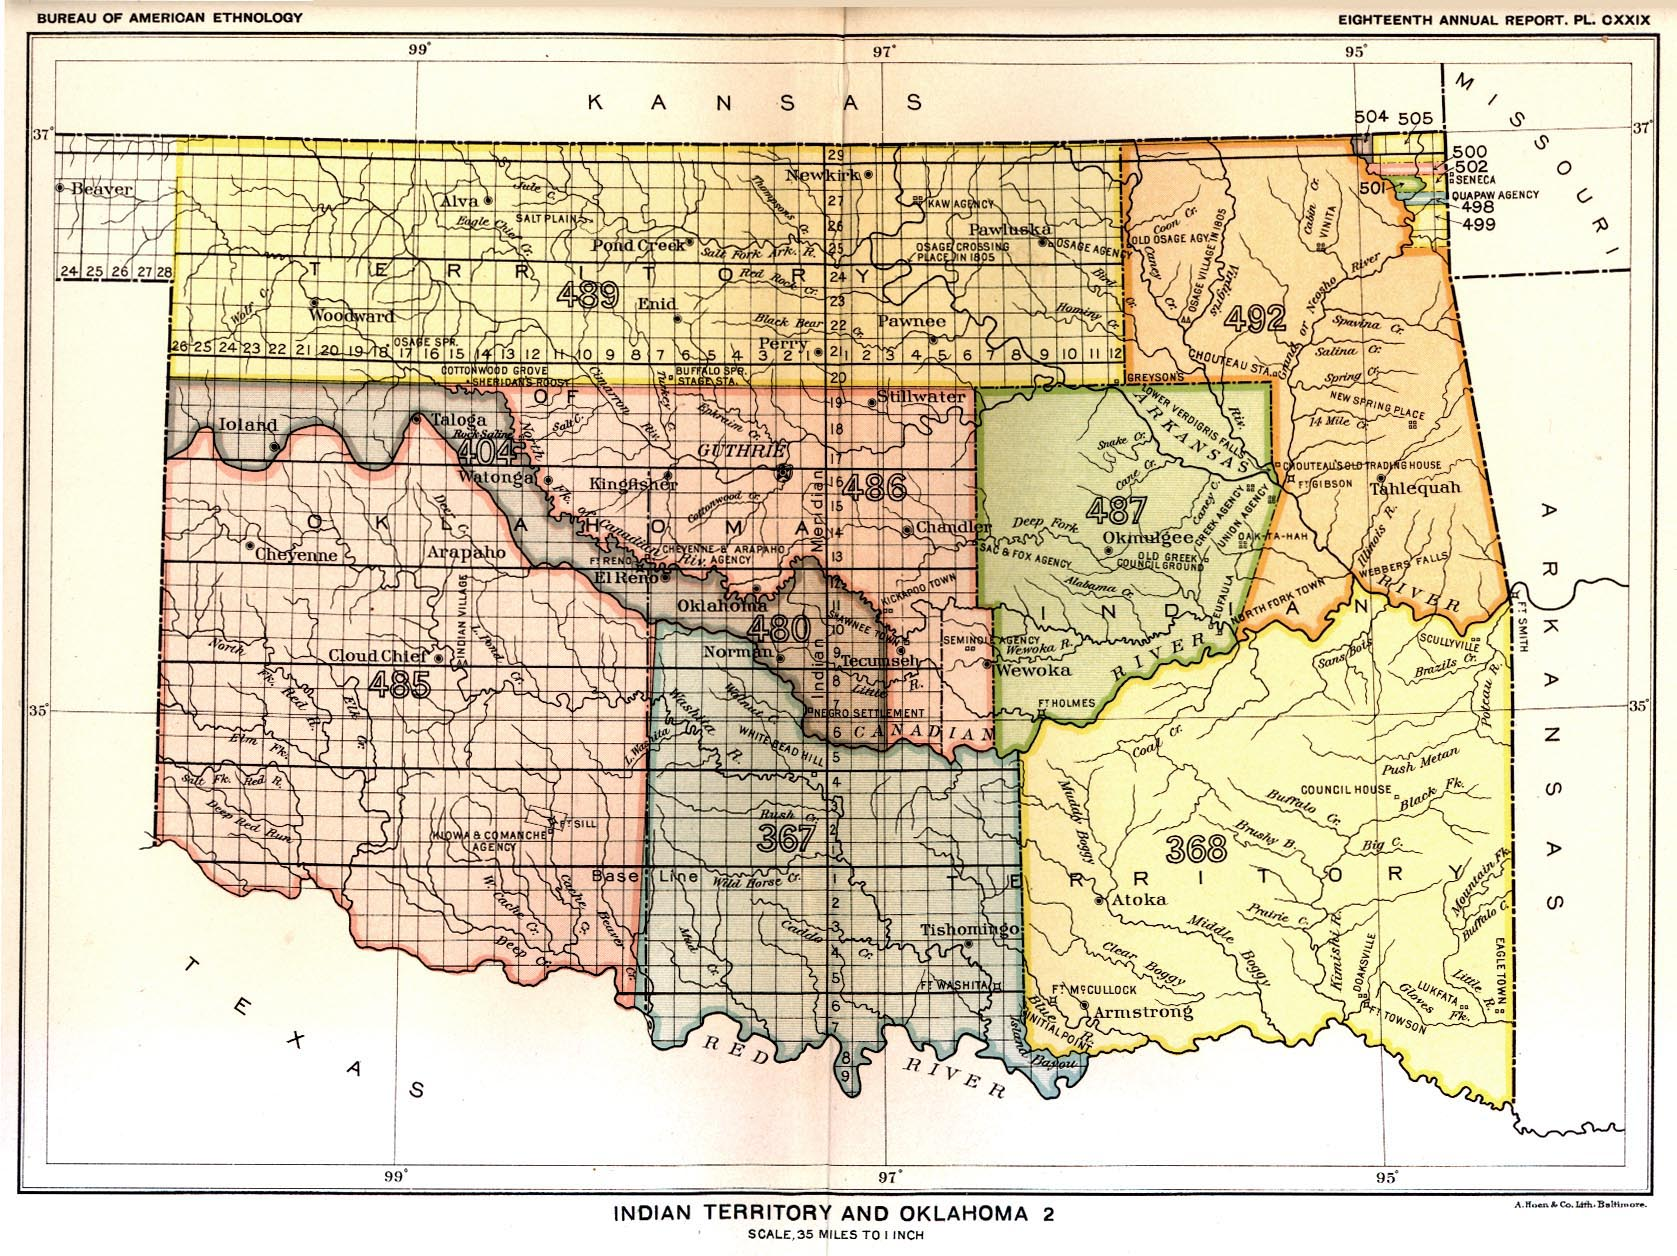 Indian Land Cessions In The U S Indian Territory Oklahoma - Map of indian lands in the us